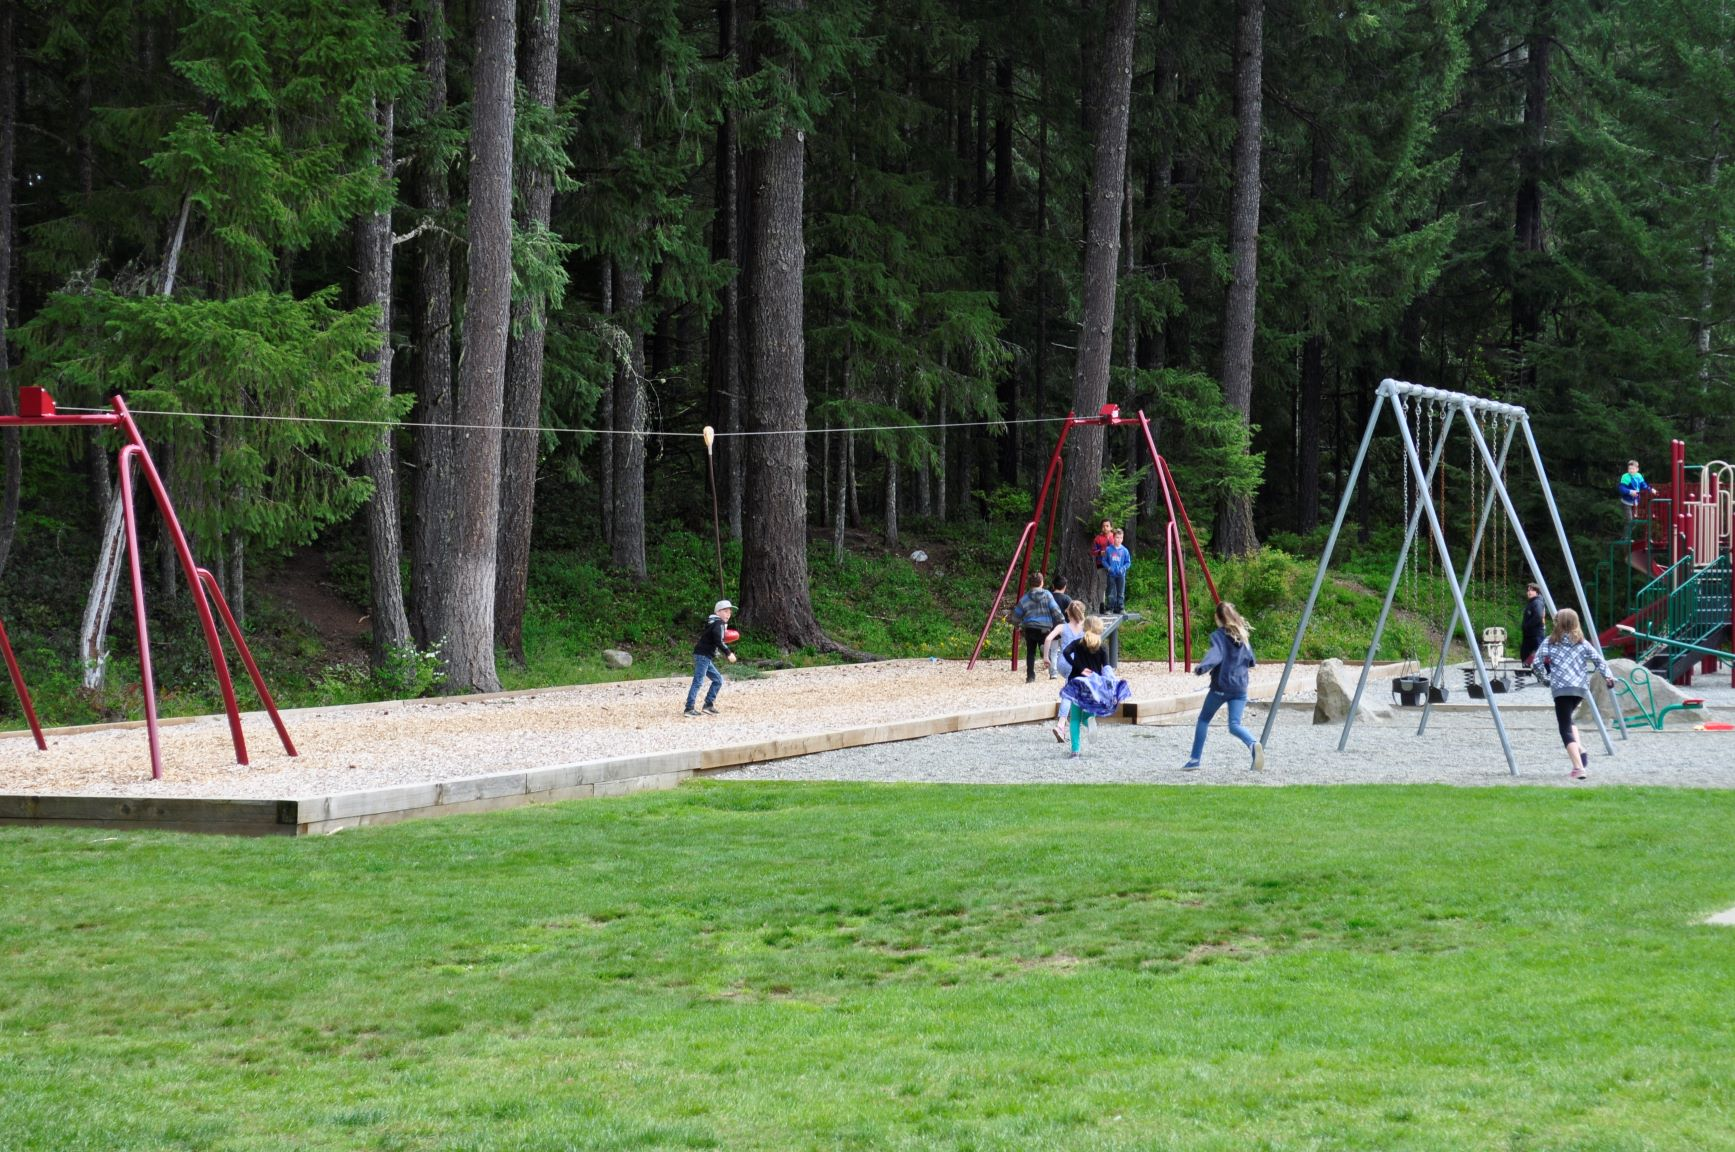 Glenora Trail Head Park playground and Zipline